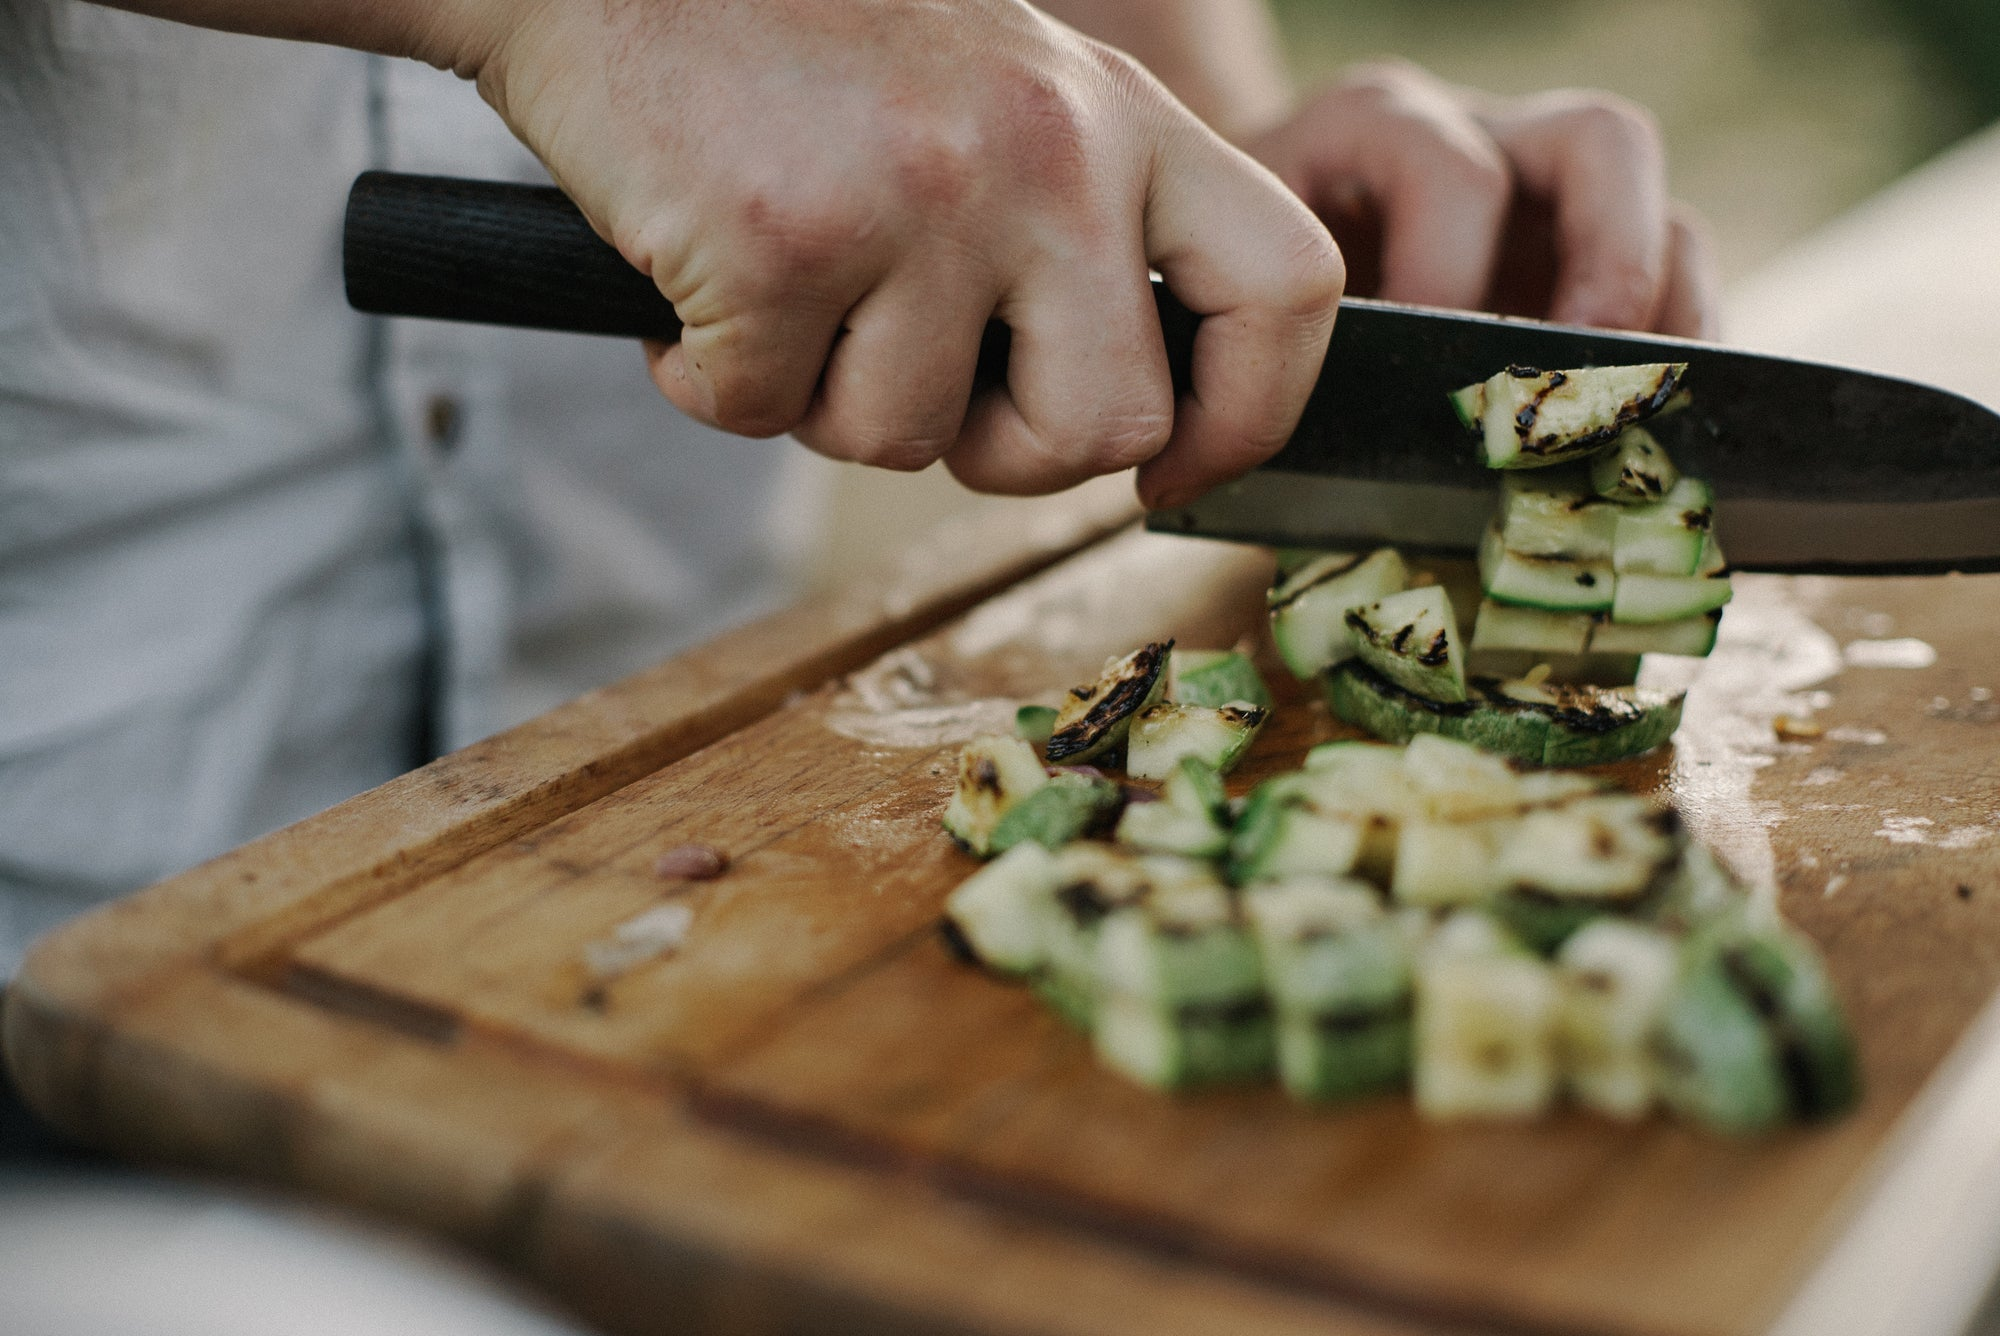 man chopping grilled zucchini on a wooden cutting board